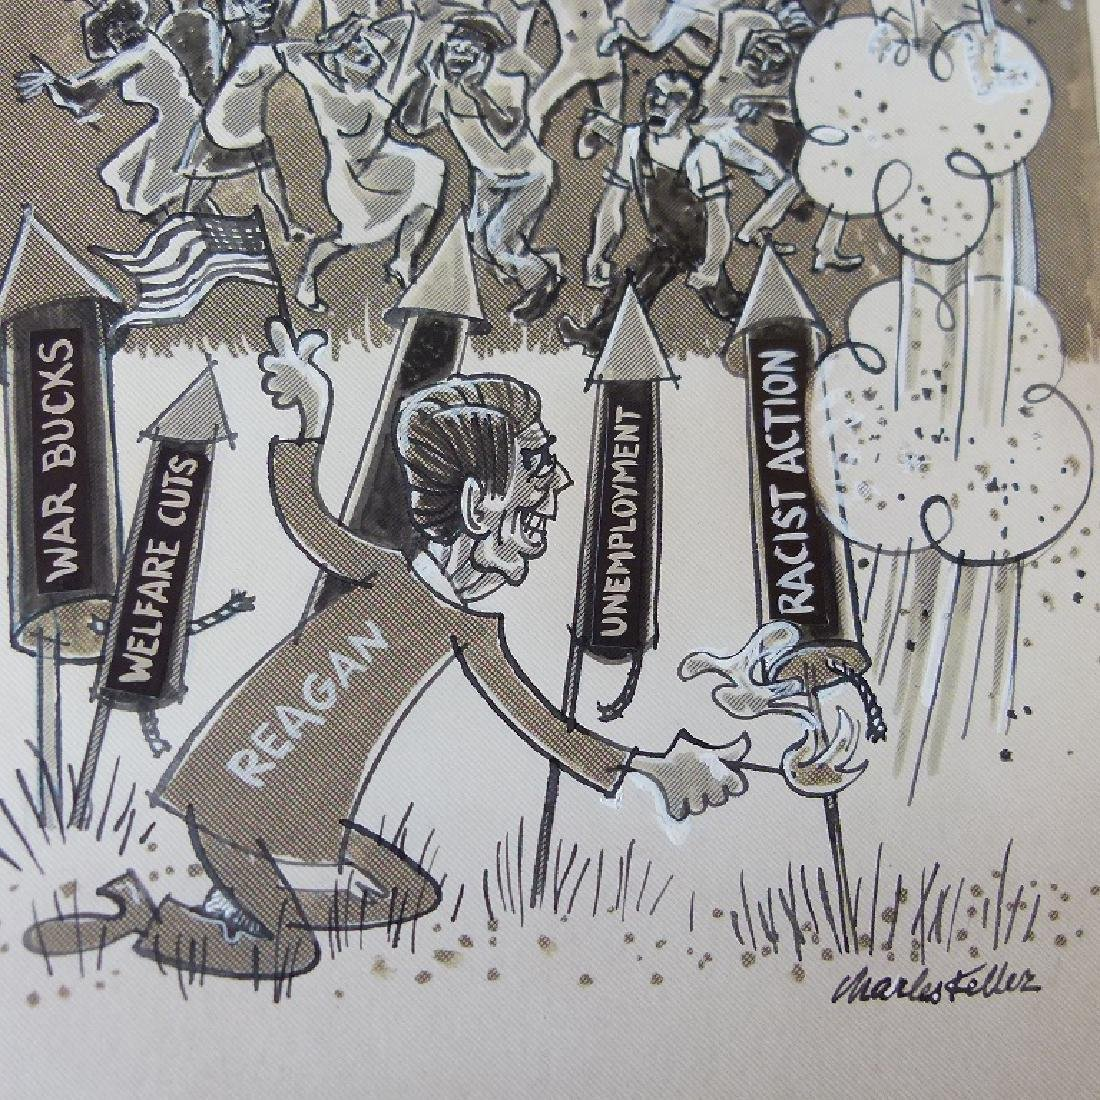 W/C GOUACHE POLITICAL CARTOONS SIGNED KELLER - 3